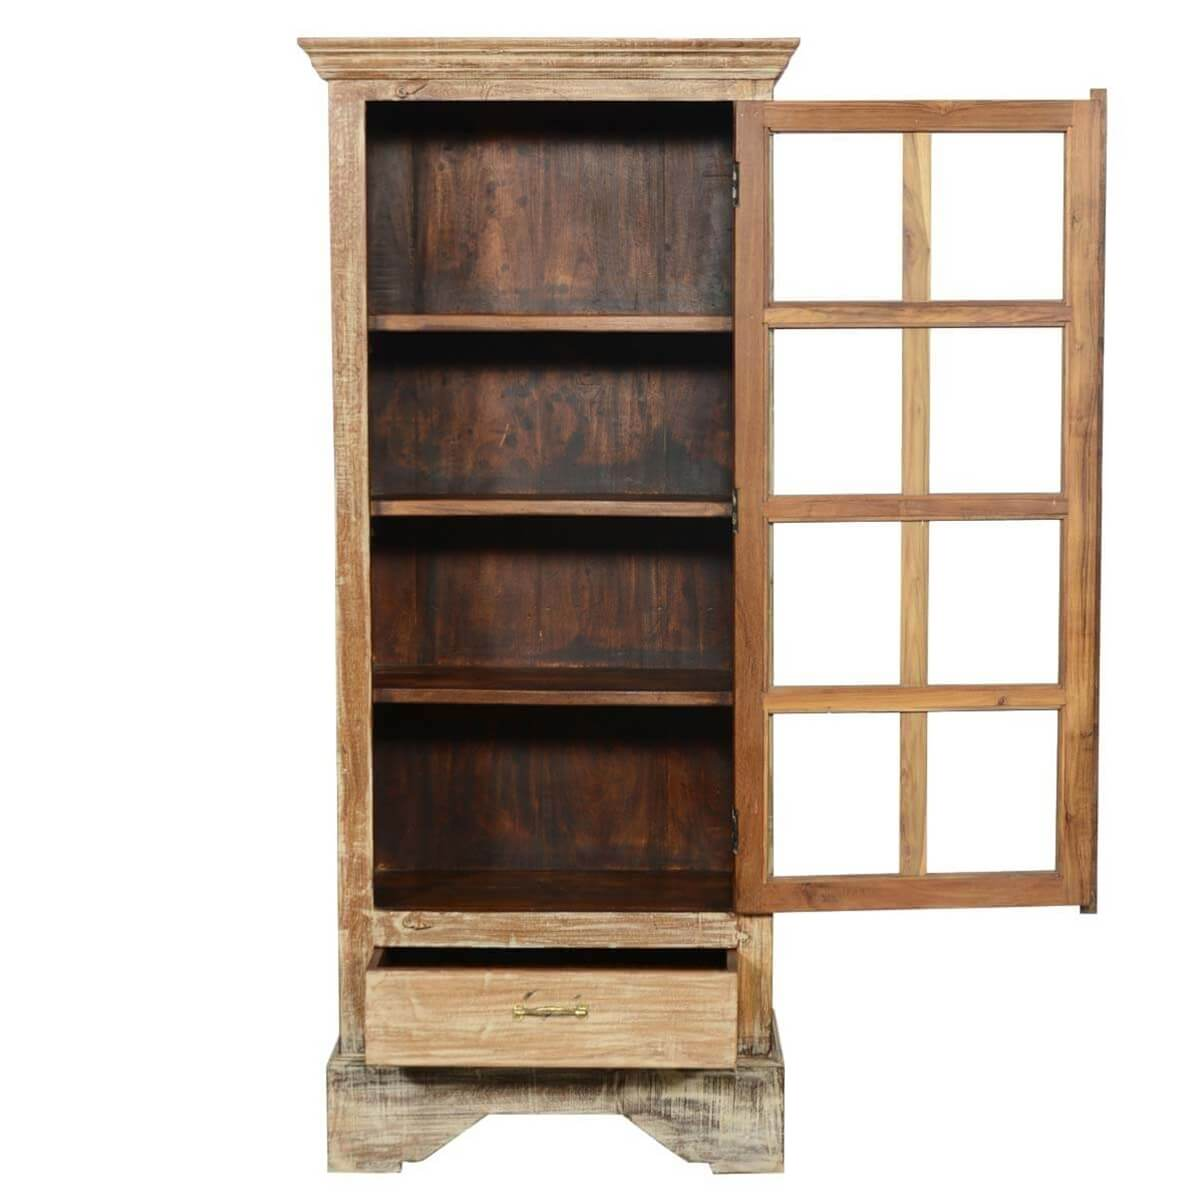 Rustic solid wood glass doors bedroom armoire wardrobe w for Solid wood door with glass